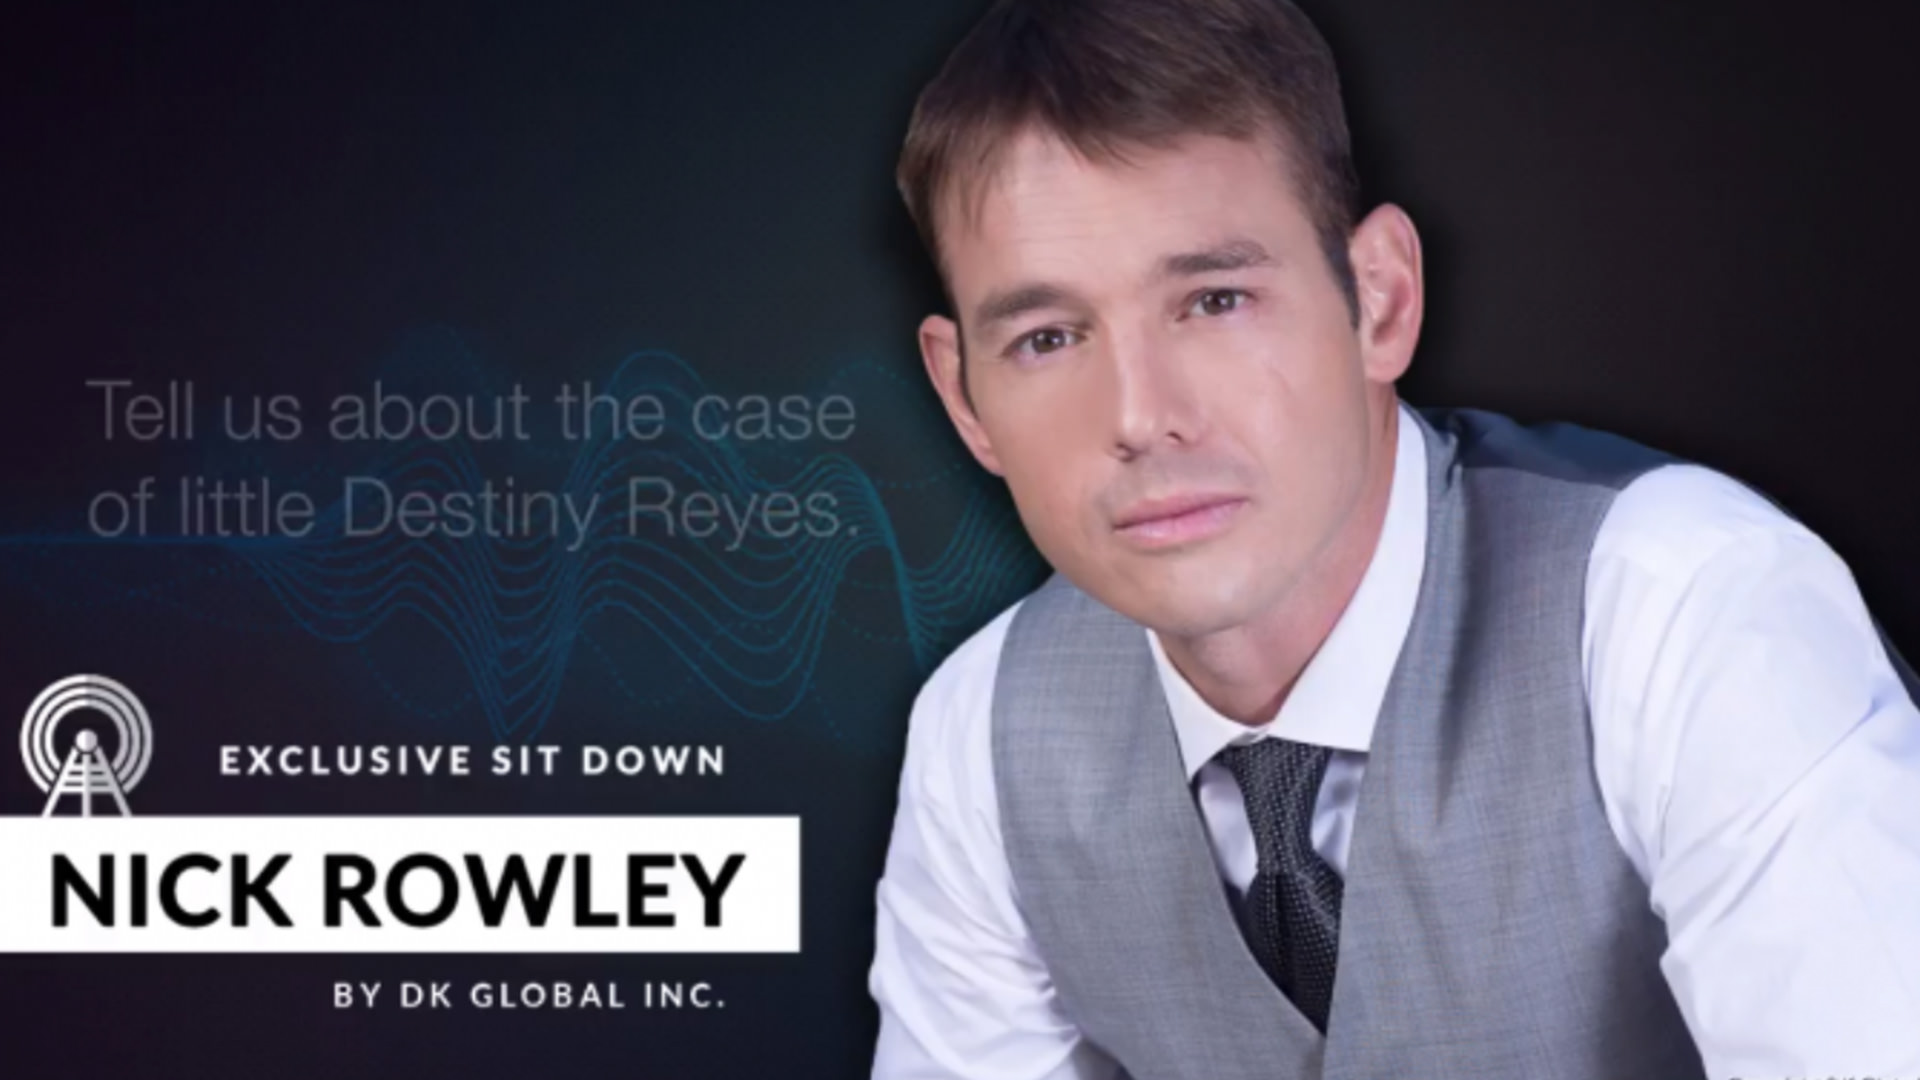 Nick Rowley was recently interviewed by DK Global regarding the Destiny Reyes case.